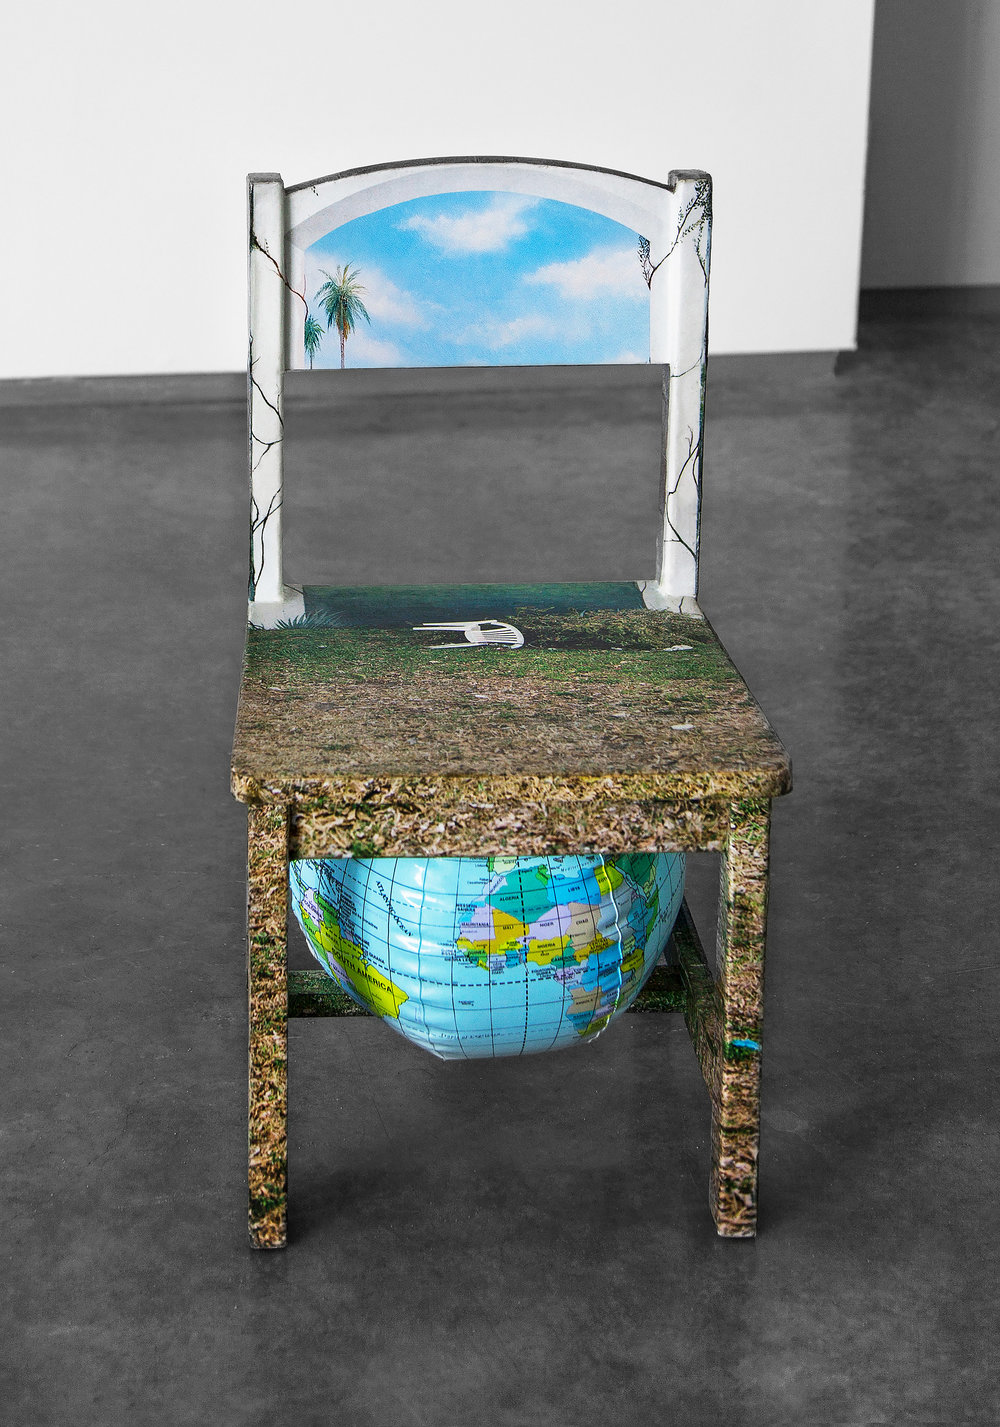 "Chair Mural II , 2014, archival inkjet print, glue, wood chair, inflatable globe, 11""x 11.5""x 21"" (28 cm x 29.2 cm x 53.3 cm)"